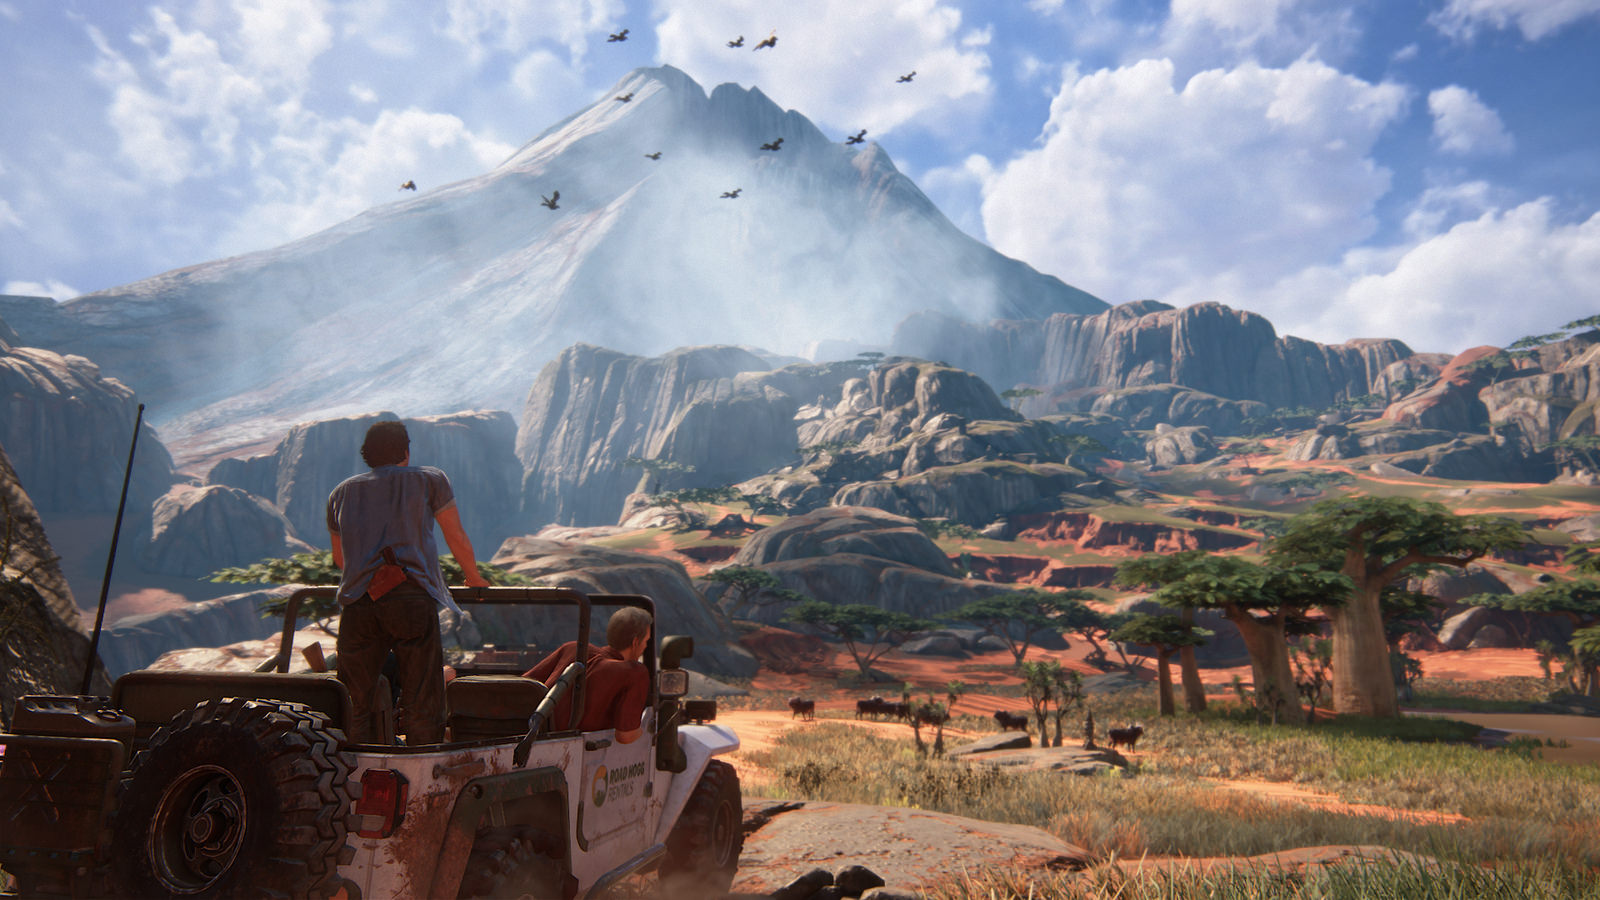 Uncharted 4 delivered a fitting end to the series.